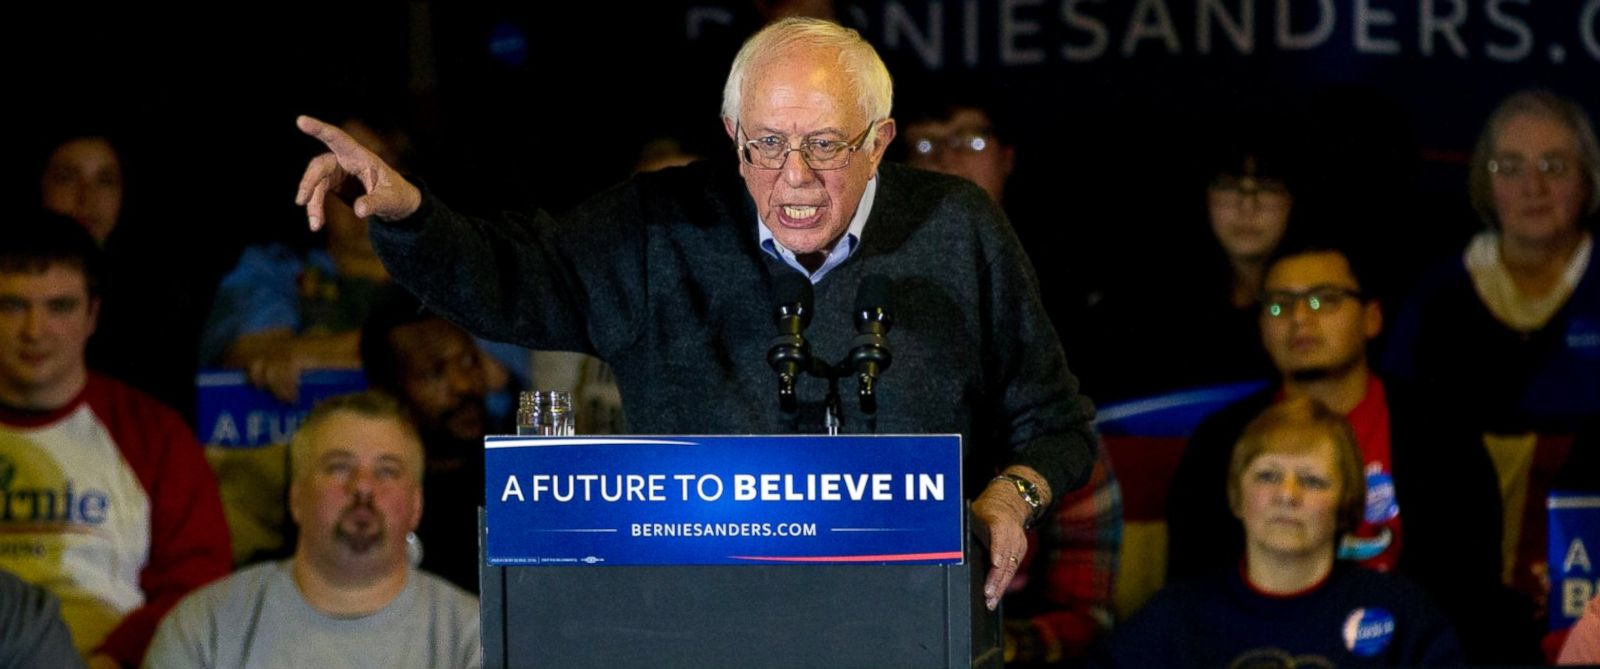 PHOTO:Democratic presidential candidate Sen. Bernie Sanders addresses the crowd at a campaign event, Jan. 23, 2016, in Clinton, Iowa.